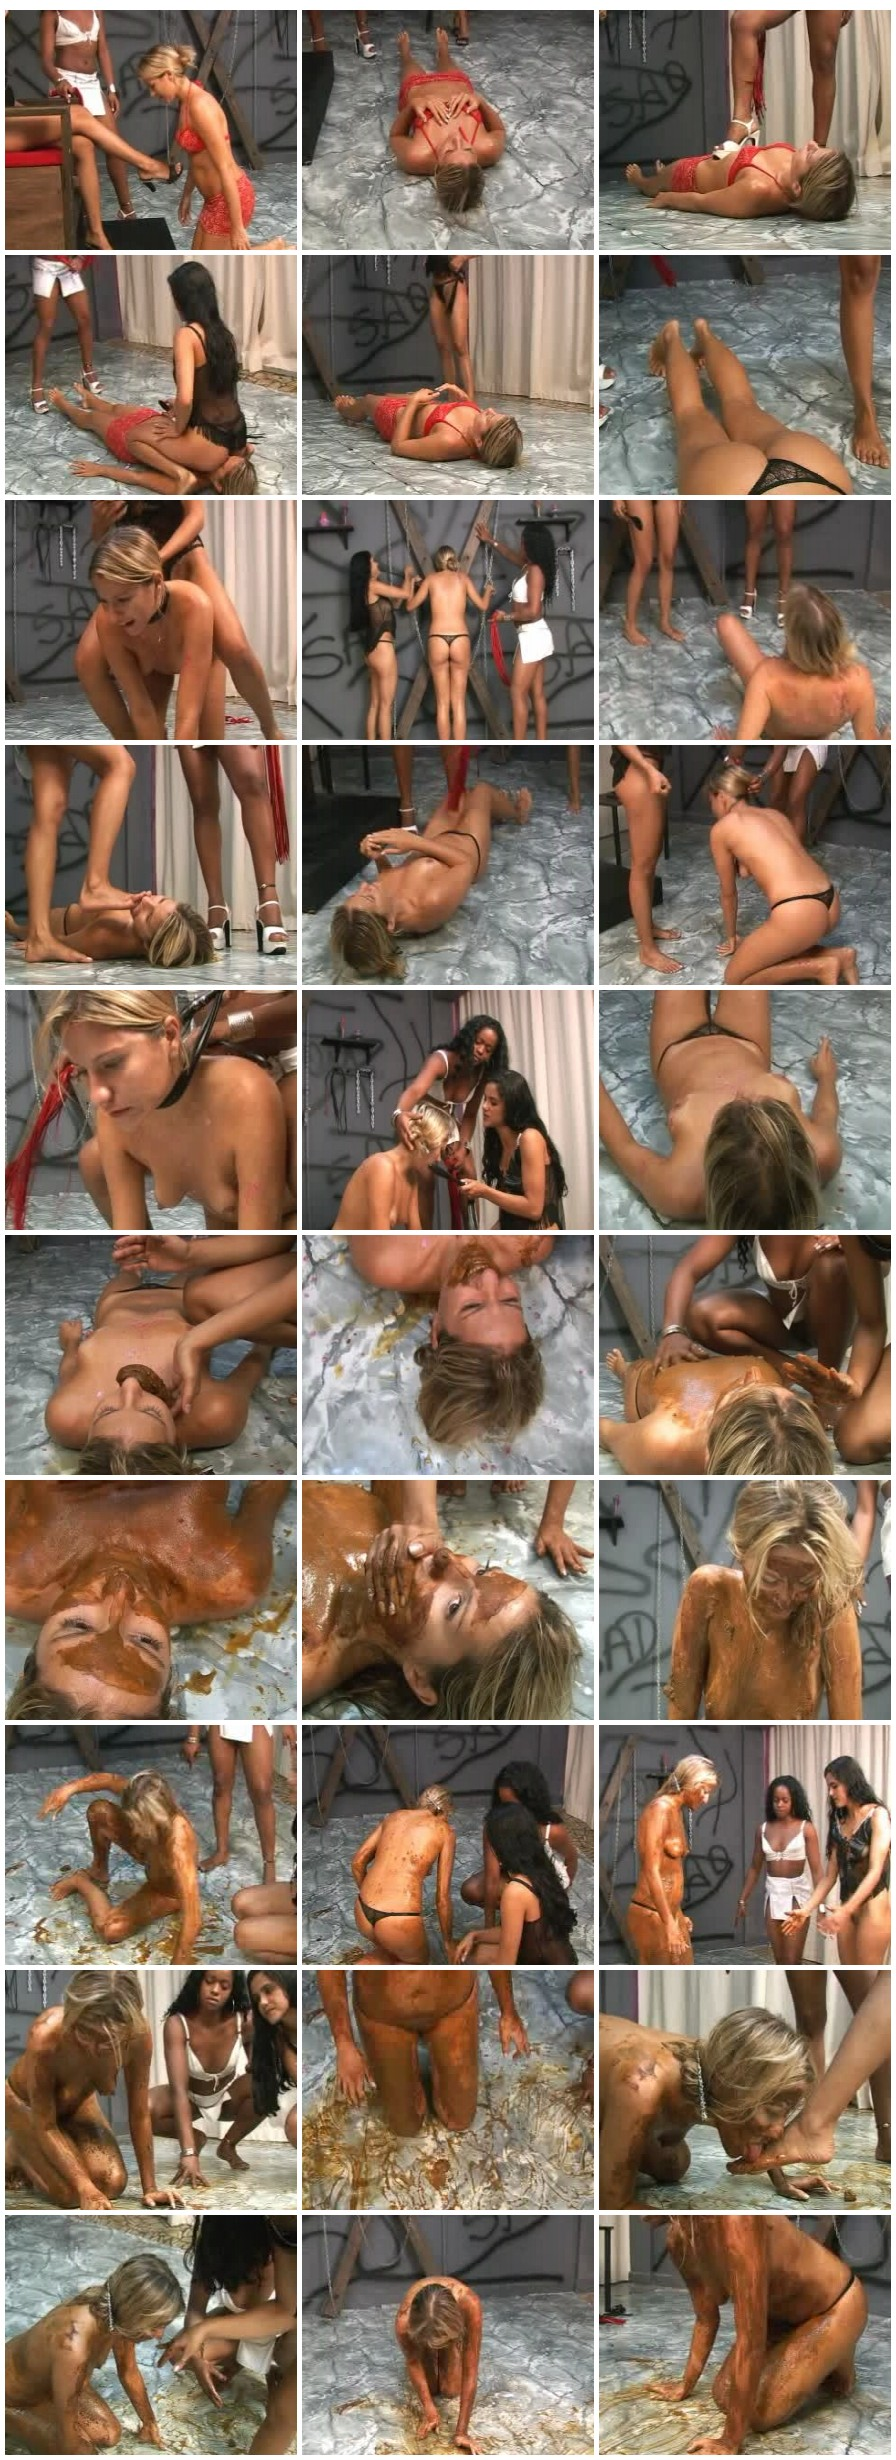 Sd-058 slave s lunch time [[Scat Lesbians, shit, defecation, pissing, Smearing,Lick ass, Facesitting, Domination, Eat shit, Drink pee, Masturbation,Vomiting ]